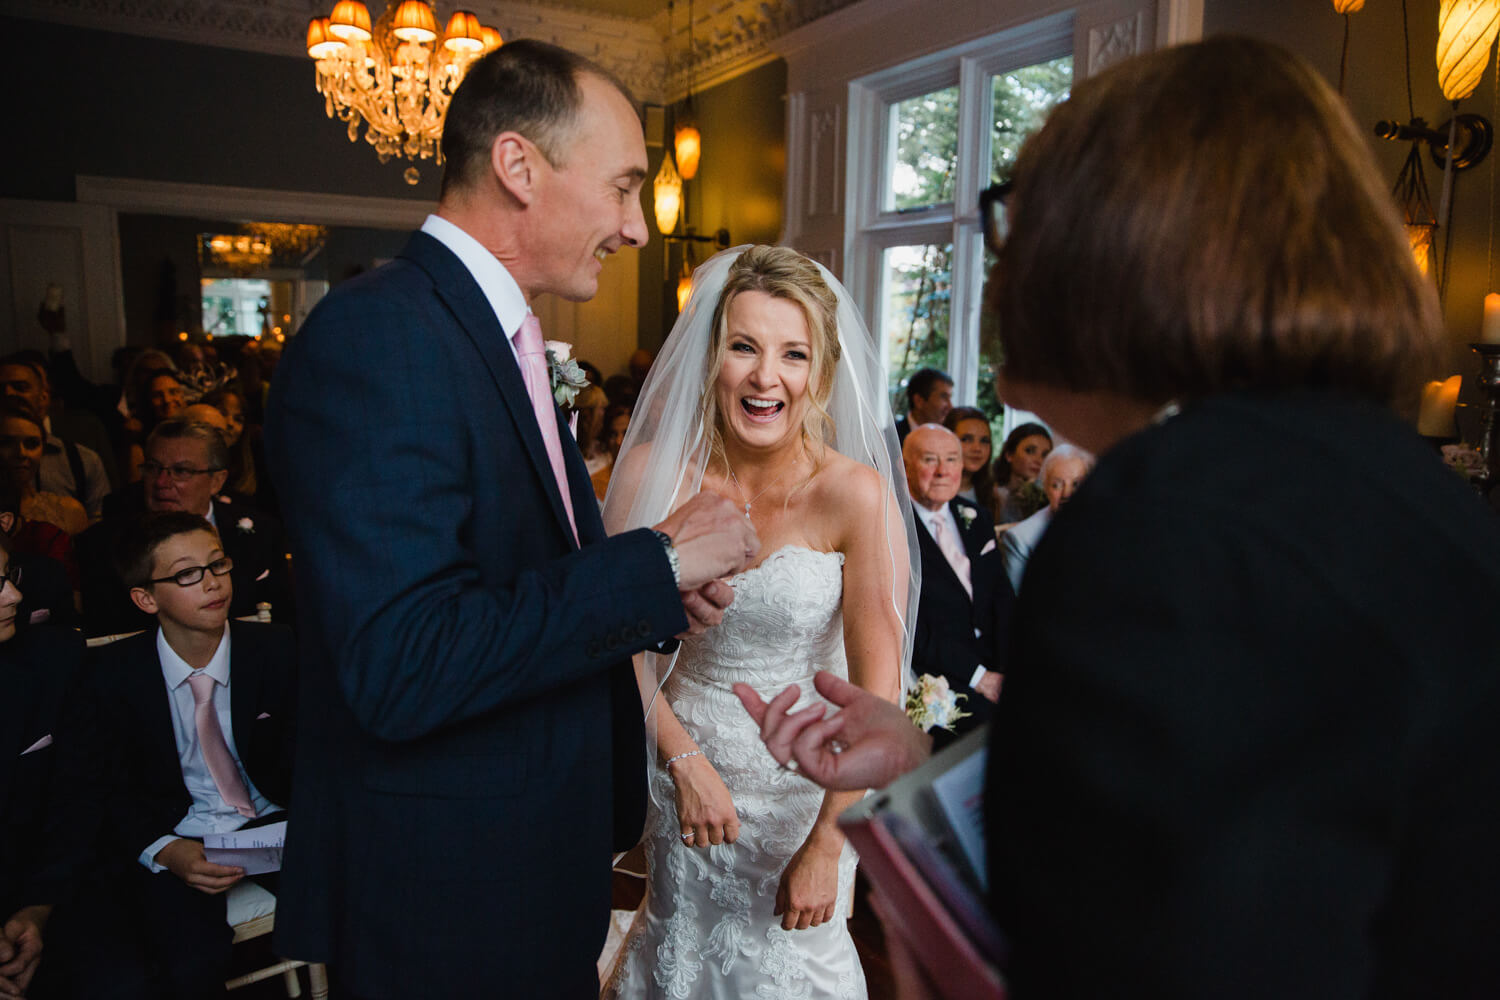 bride sharing joke with registrar during nuptials